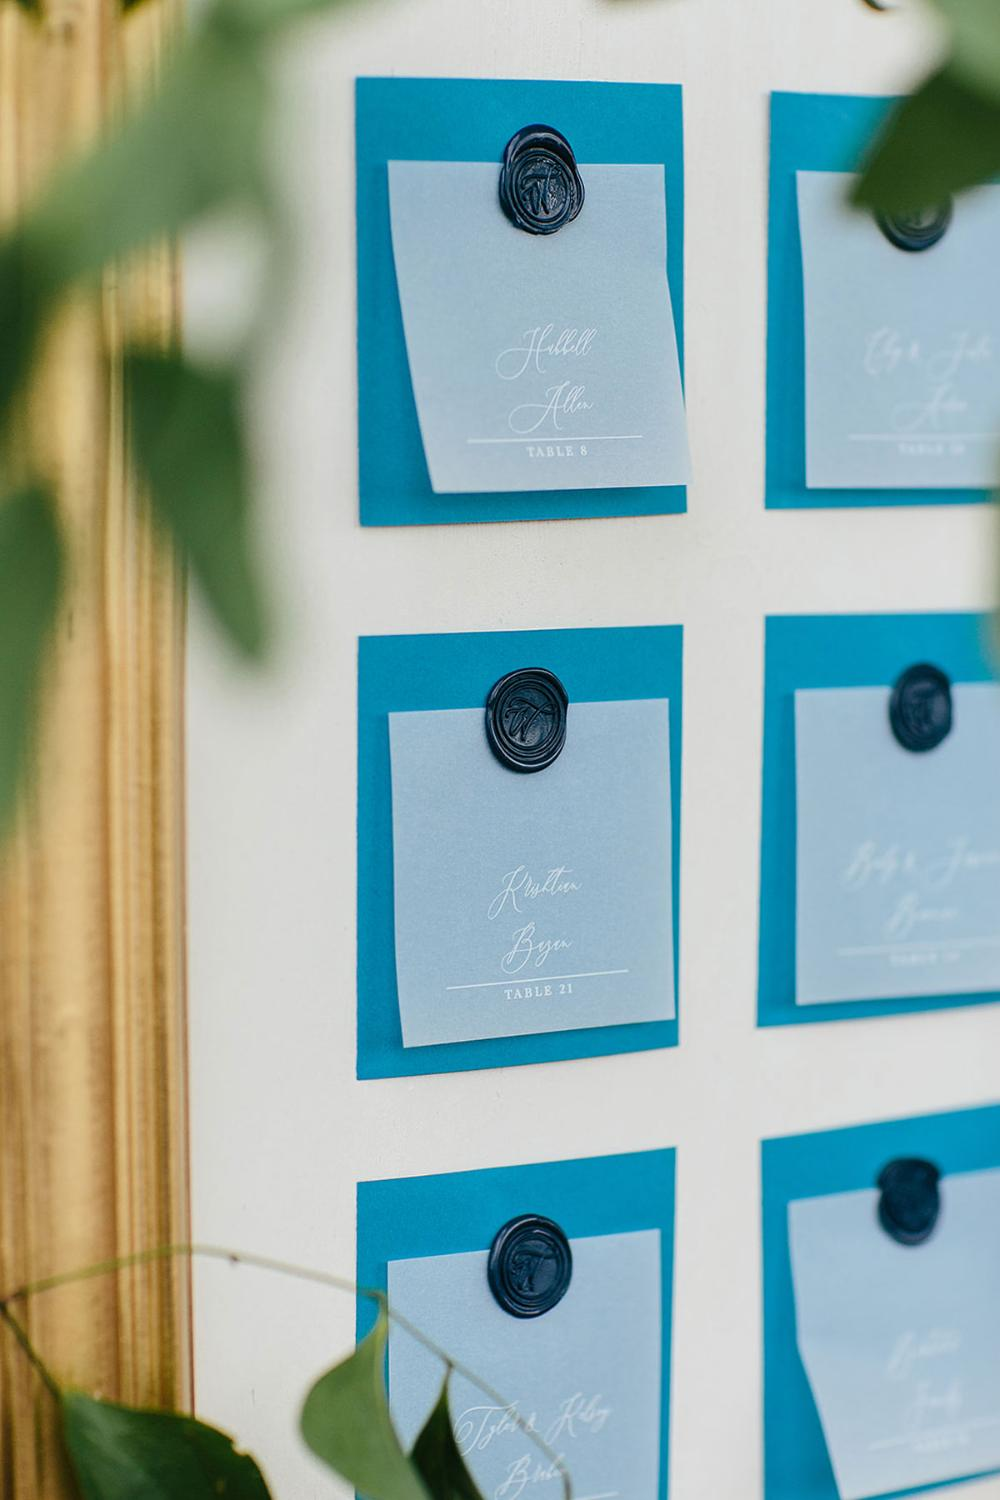 Vellum Wedding Escort Cards Cards with White Delicate Calligraphy Script, Blue Backer and Wax Seal with Guest Name